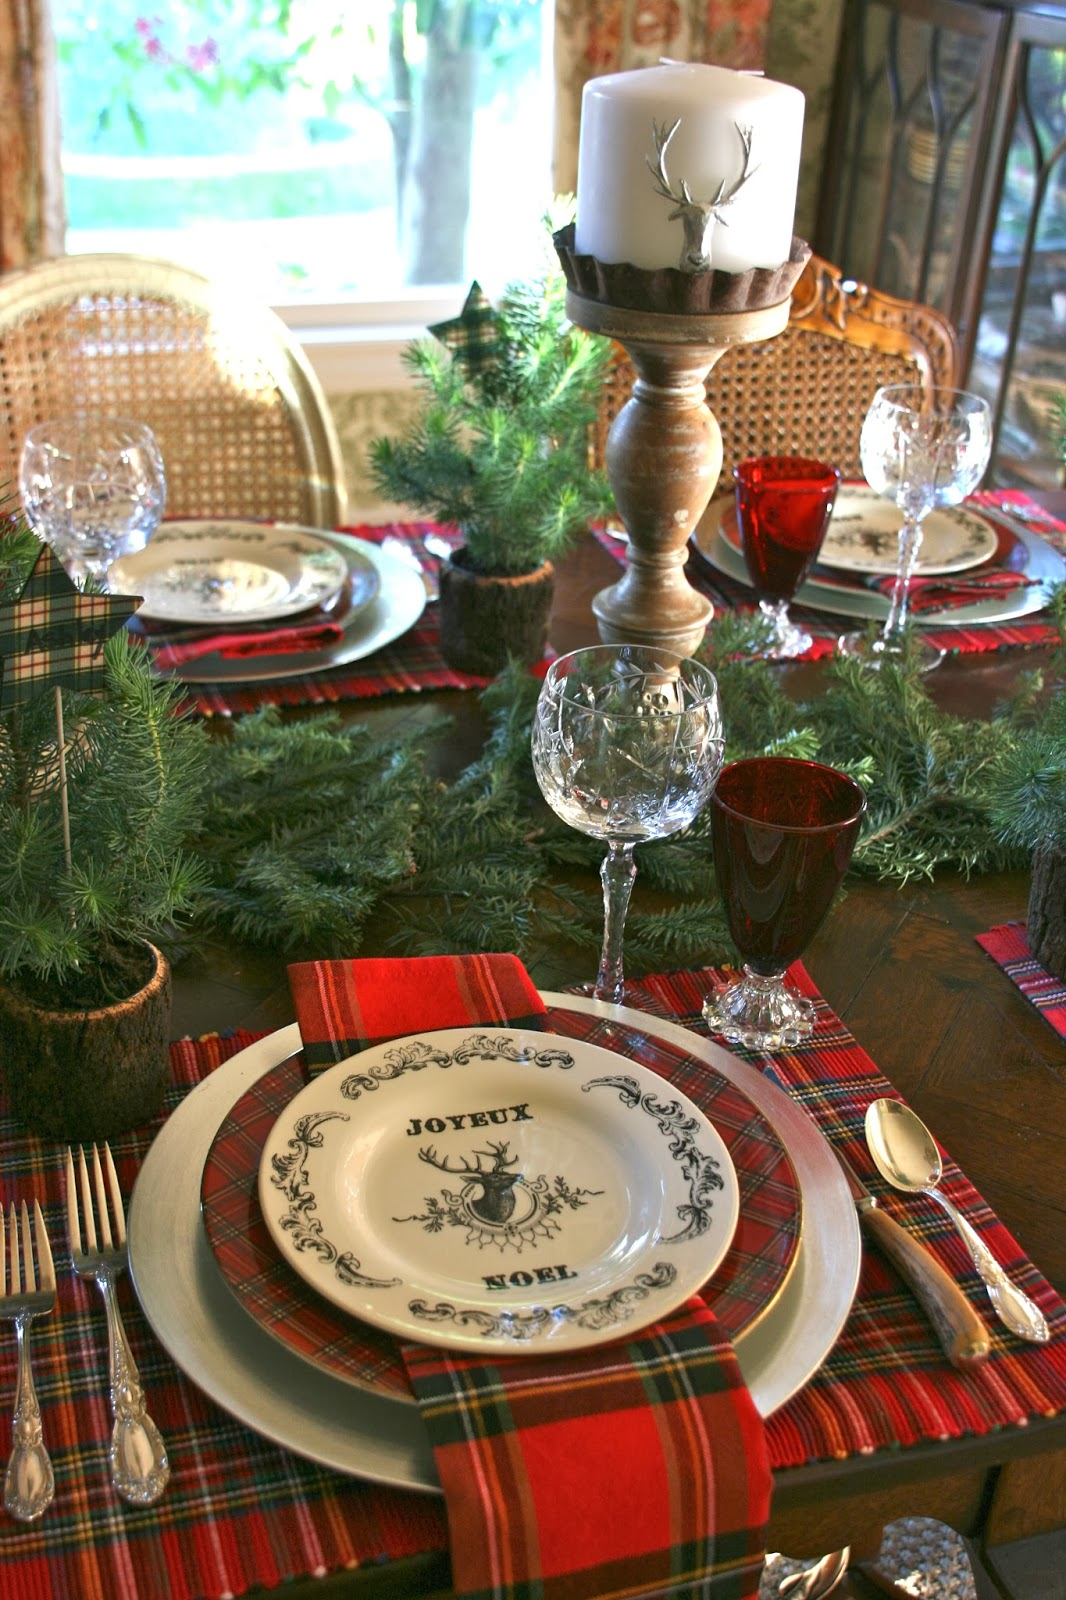 vignette design a christmas day tablescape. Black Bedroom Furniture Sets. Home Design Ideas